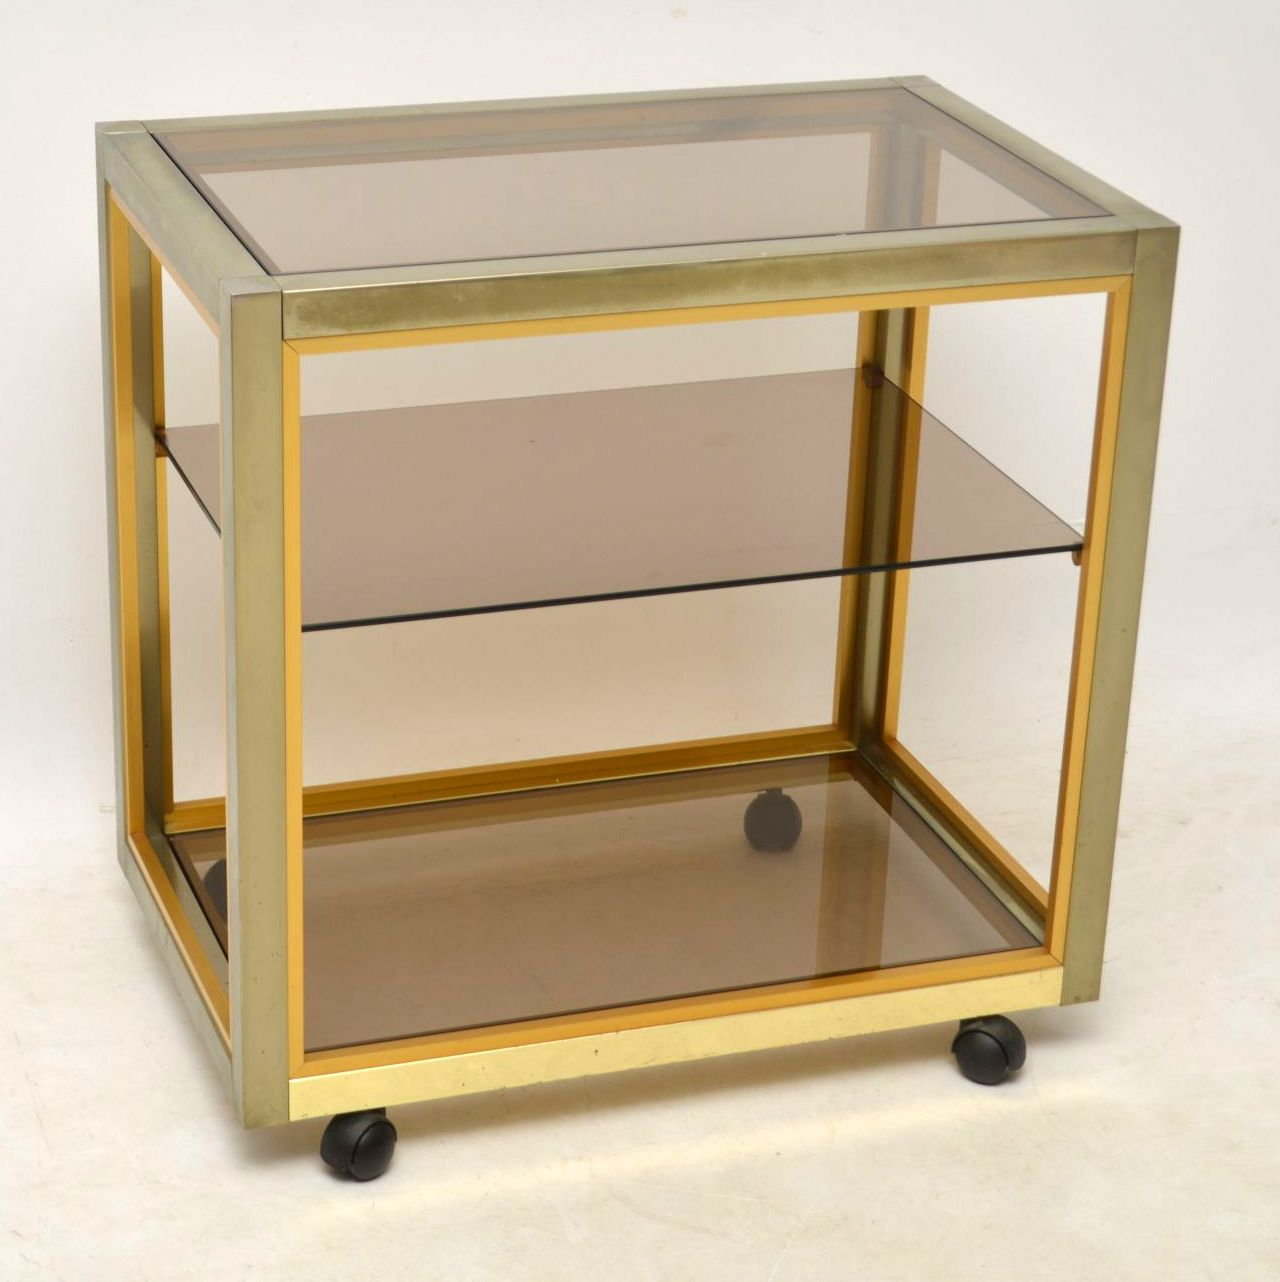 1970's Italian Vintage Brass Drinks Trolley by Zevi